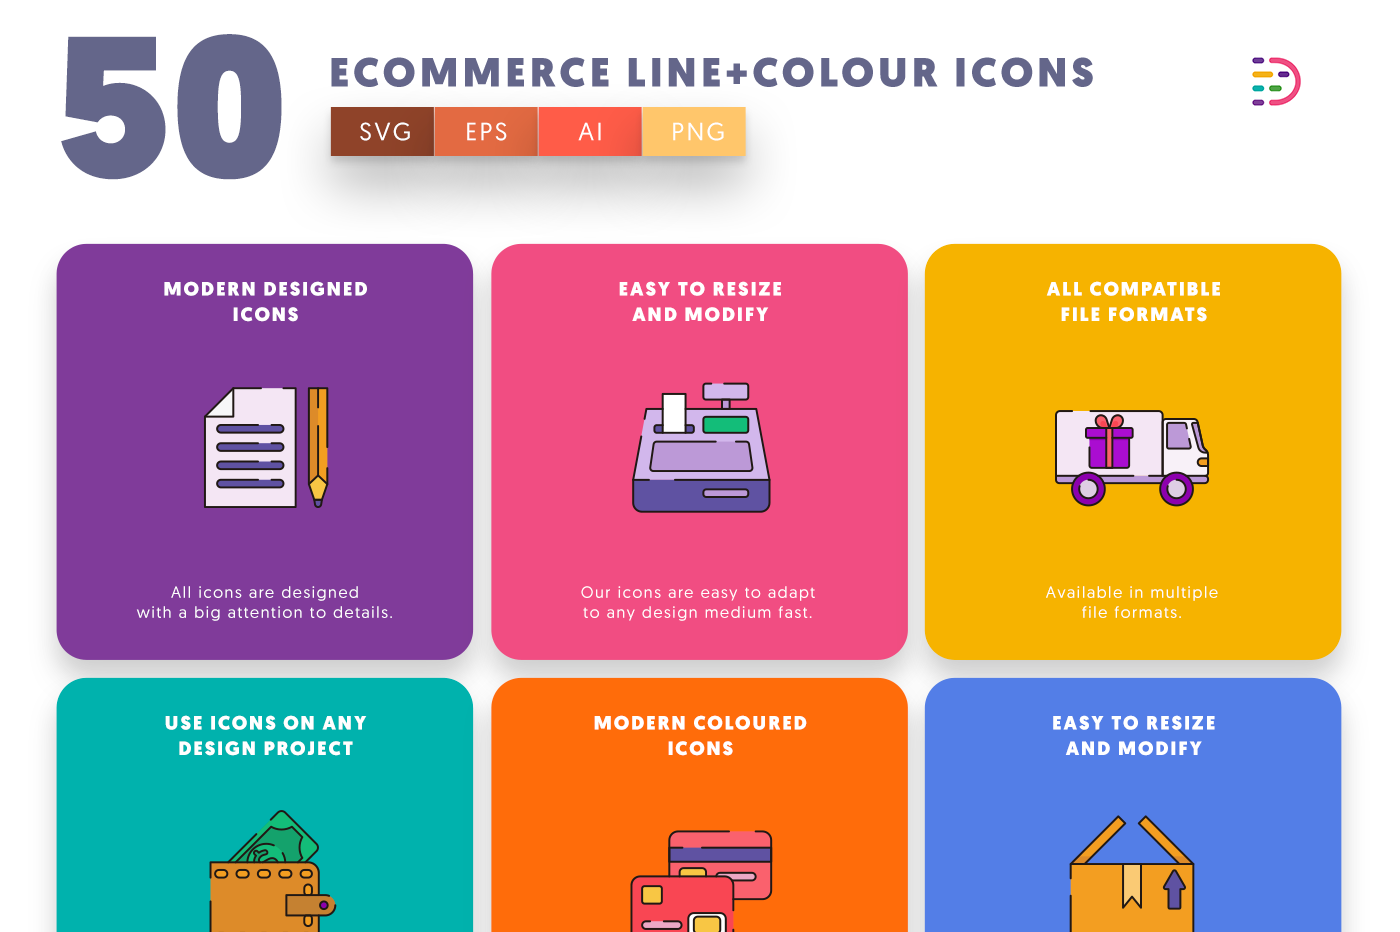 50 Ecommerce Line+Colour Icons with colored backgrounds